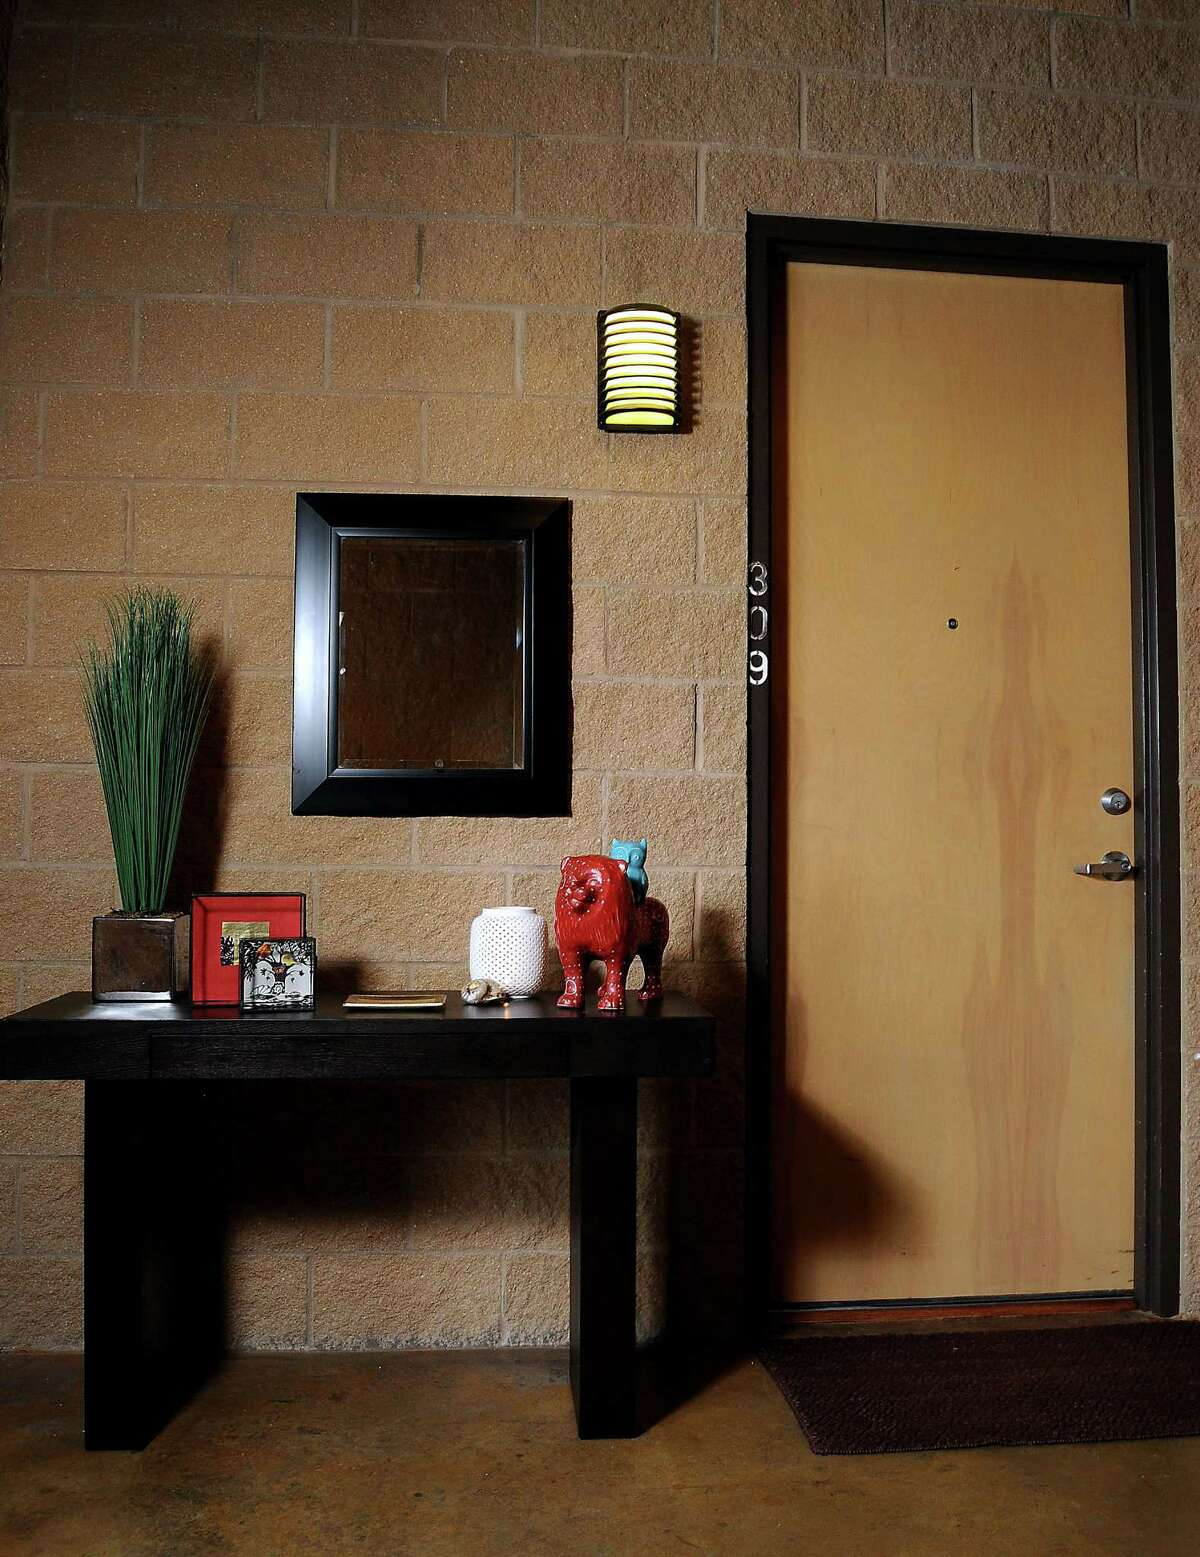 The entryway outside the home of Feng Shui expert Gina Castellano at the Stanford Lofts Friday Aug. 03, 2012.(Dave Rossman/For the Chronicle)